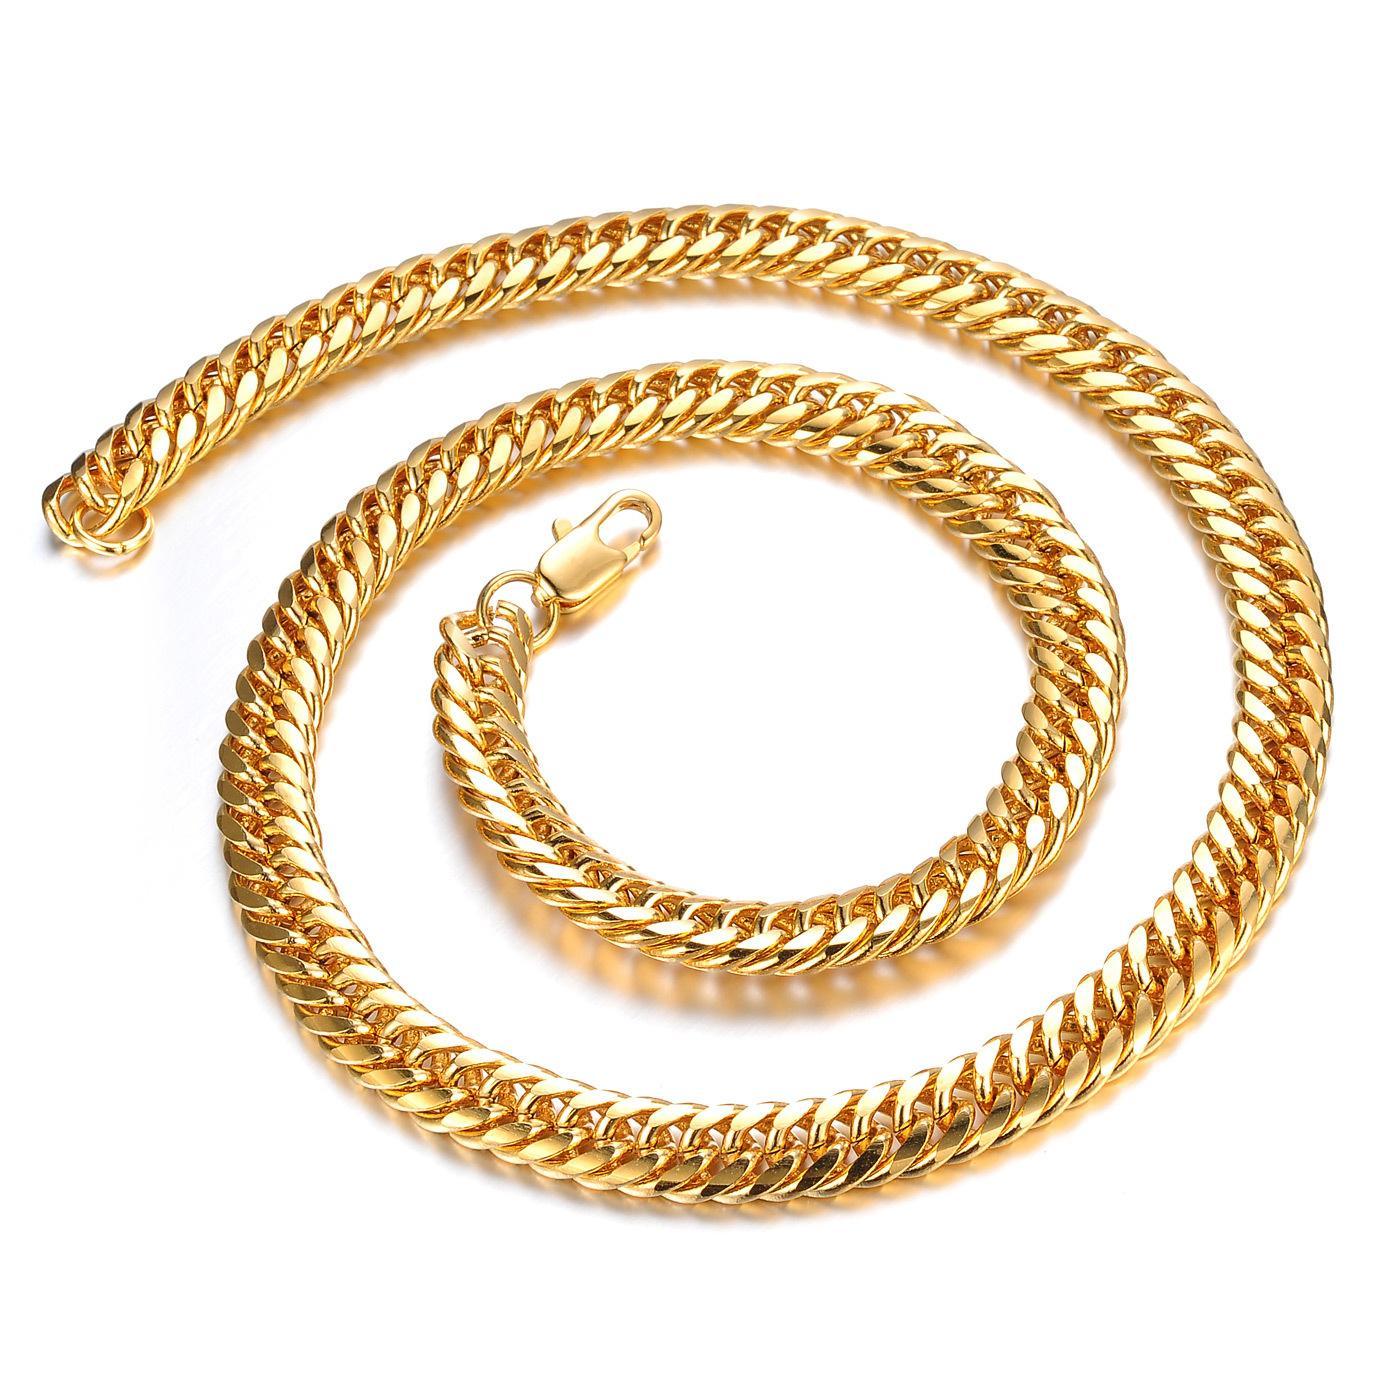 products set it gold chains off pendant major luxe and